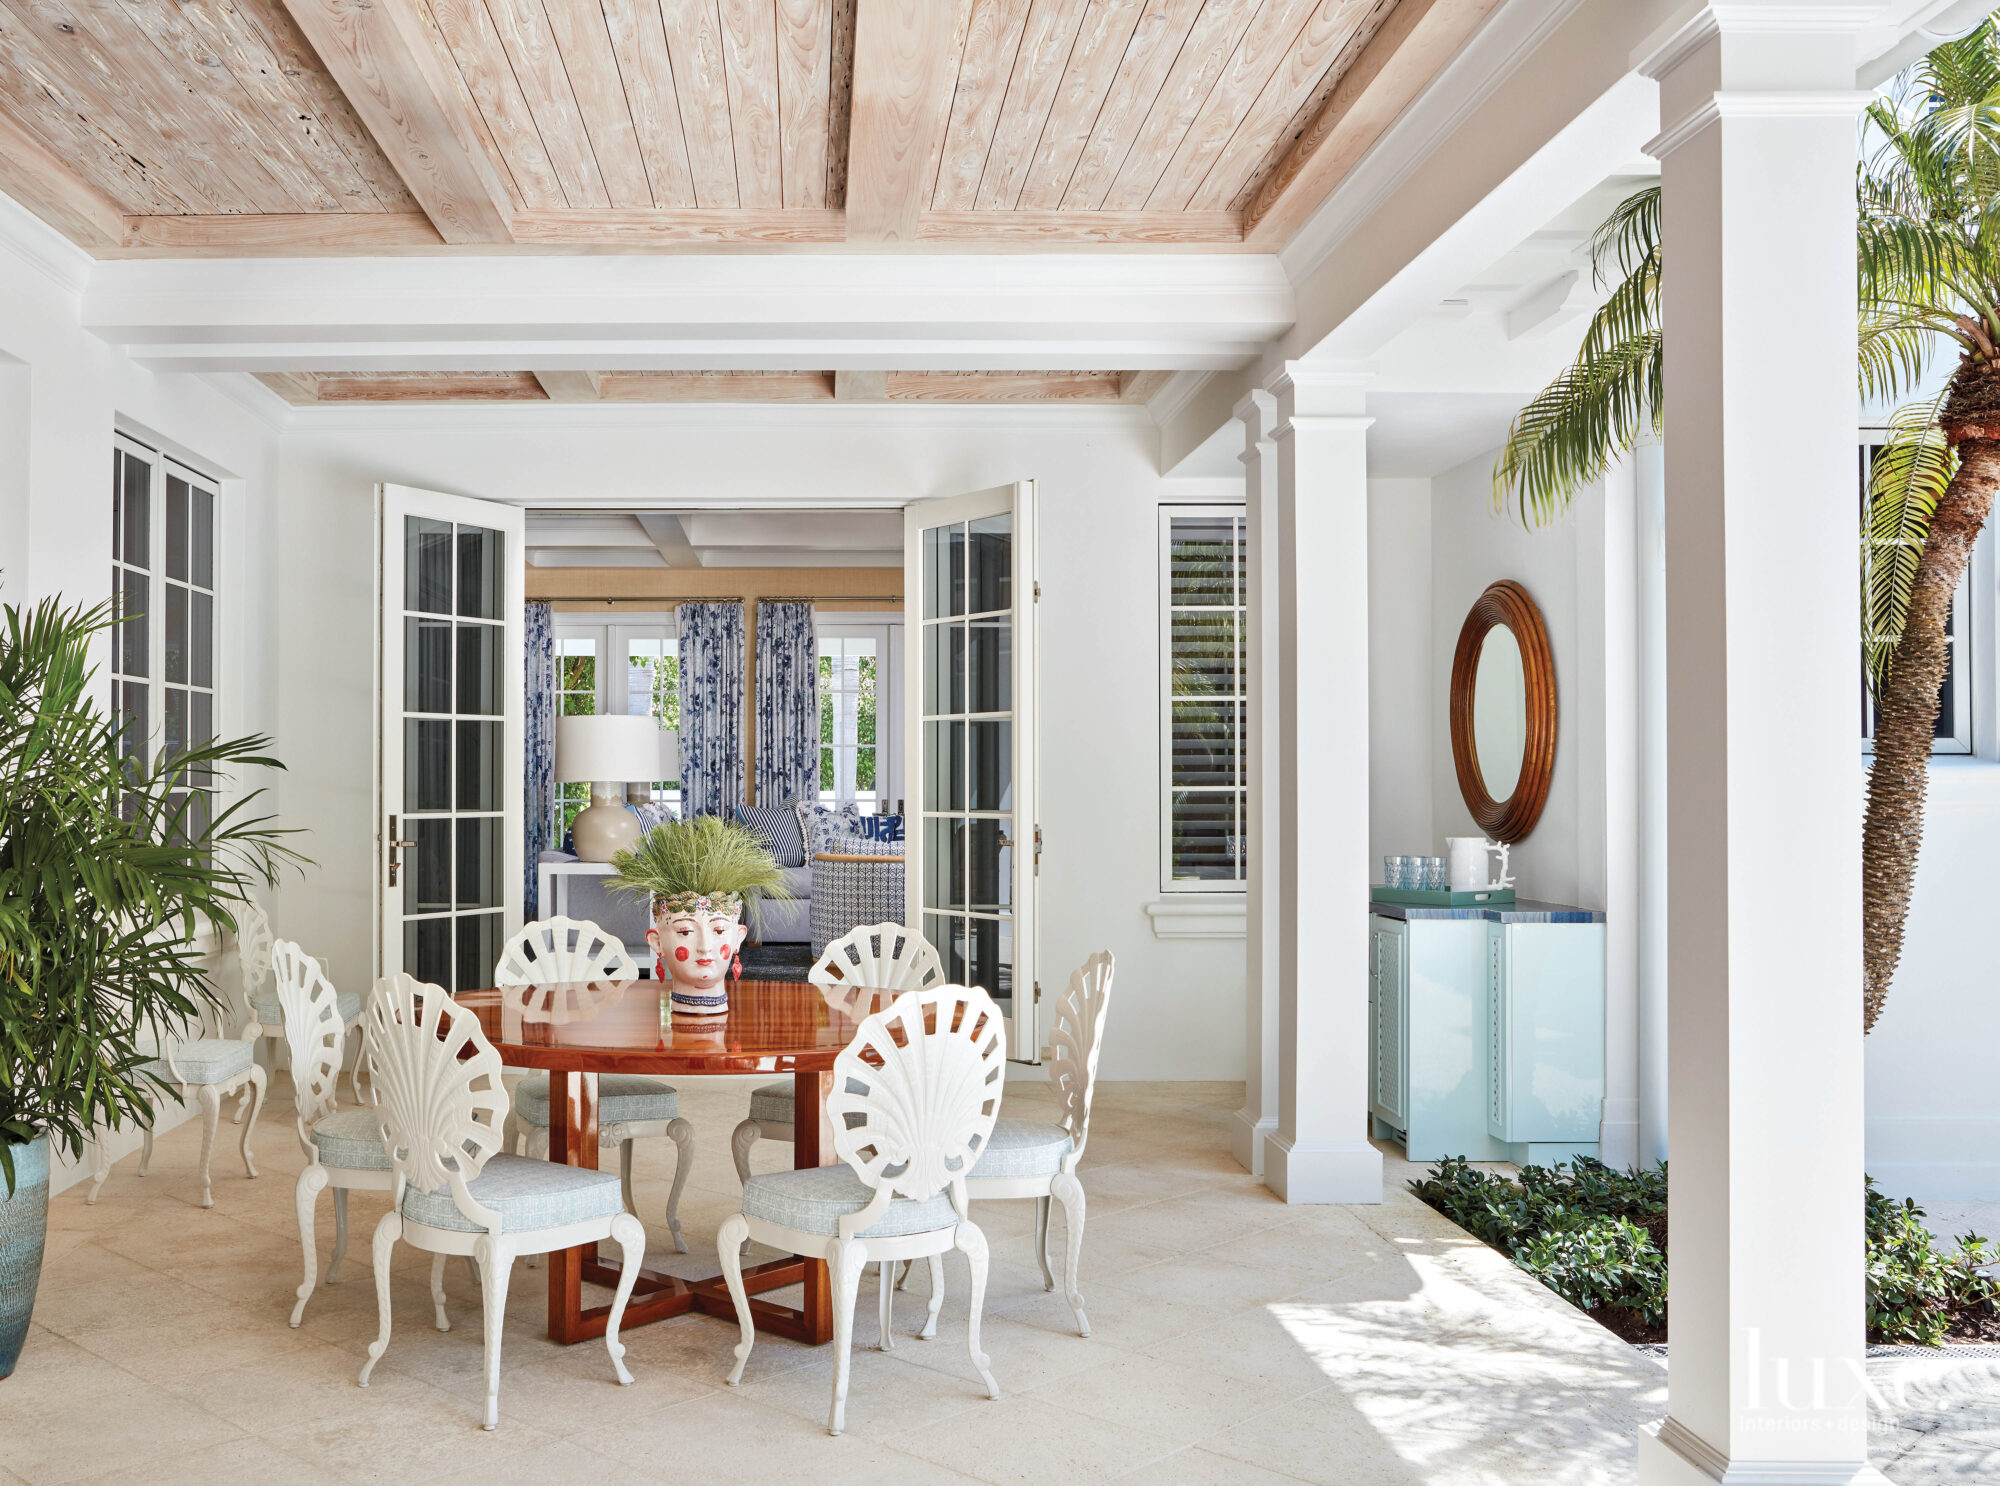 Loggia with vintage grotto chairs...